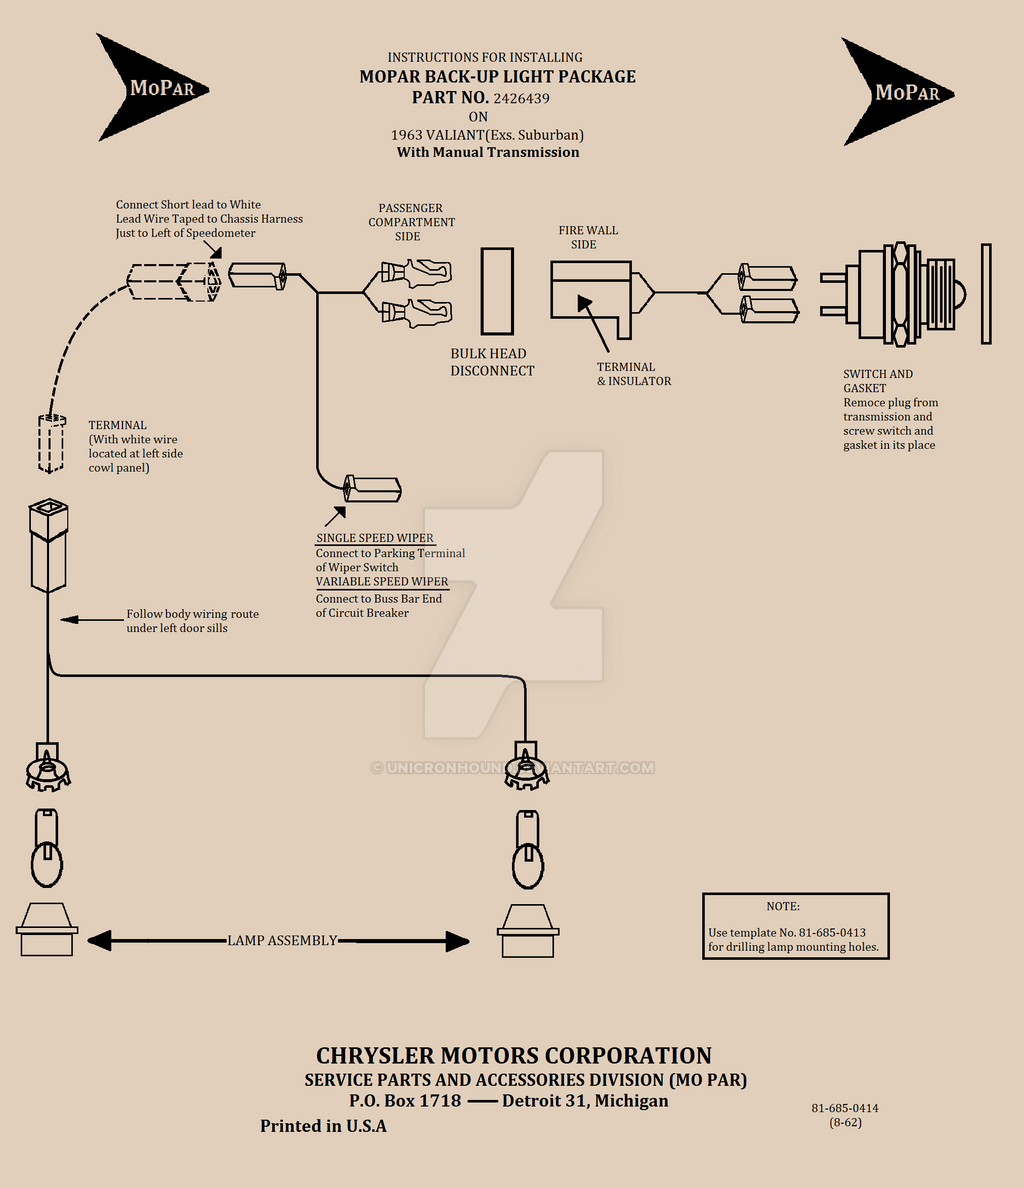 Wiring Diagram 1963 Valiant Reverse Lights By Unicronhound On Deviantart Light